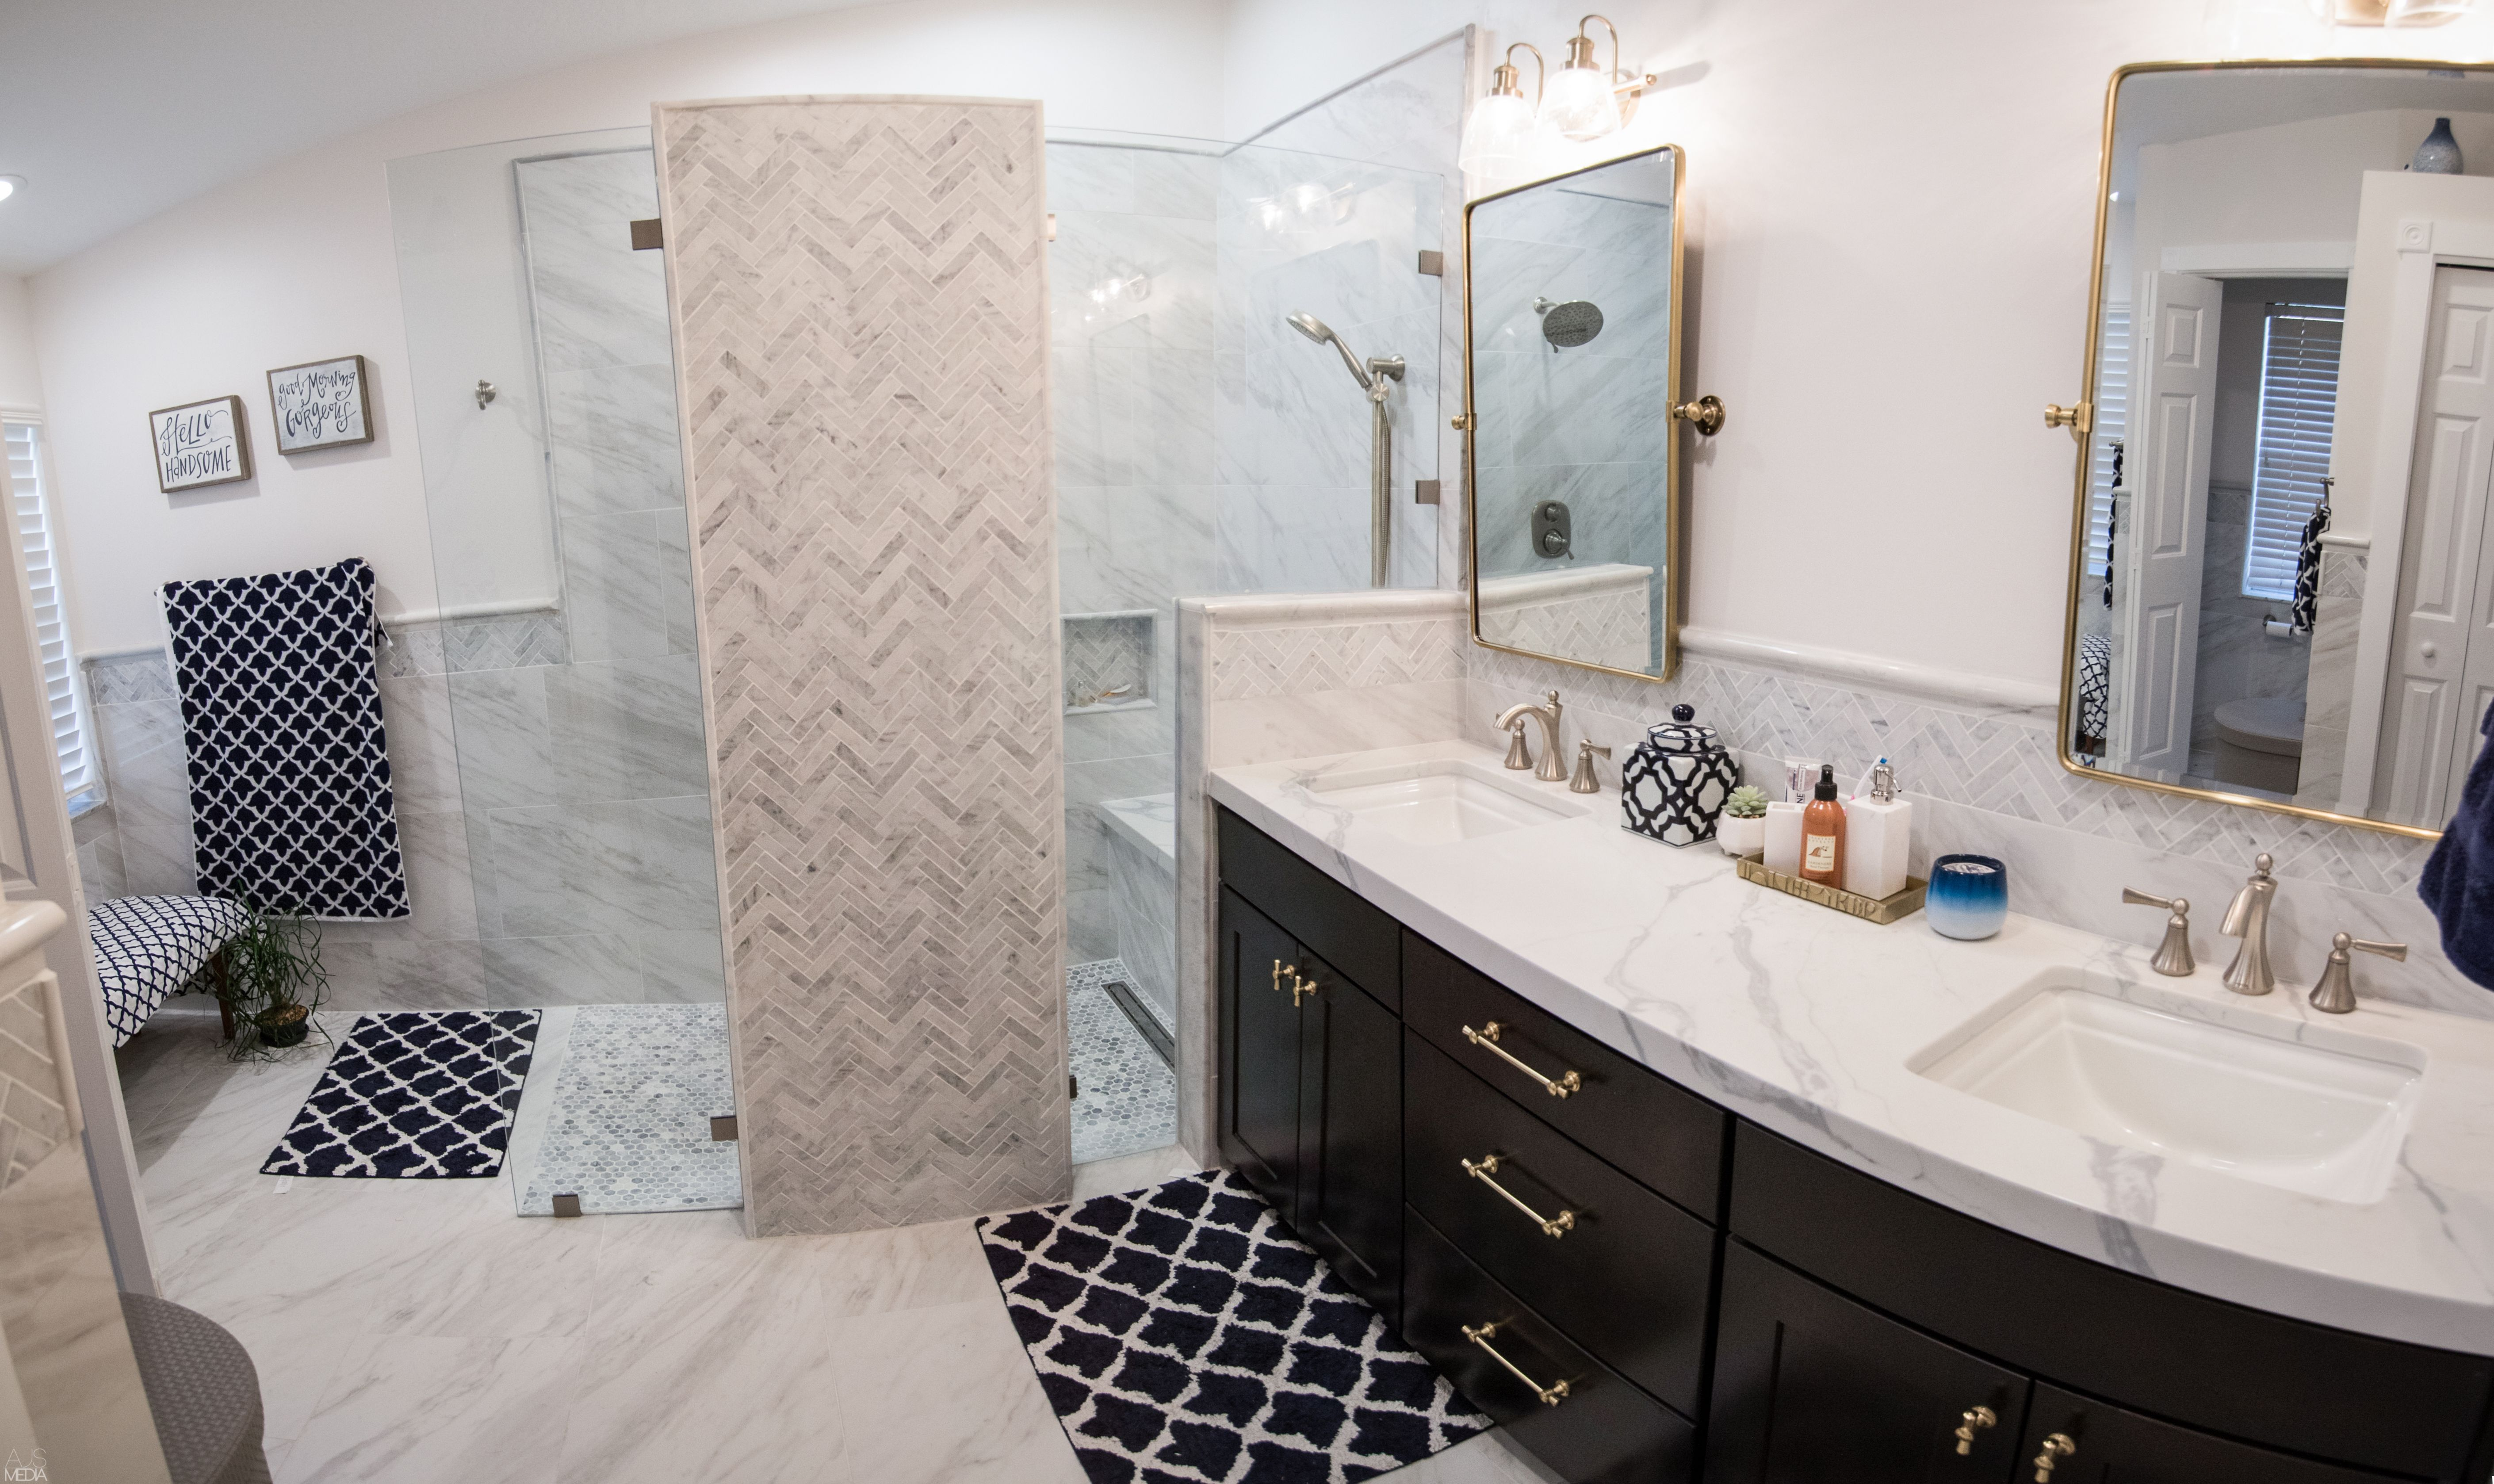 Finished Bathroom Remodel The Entire